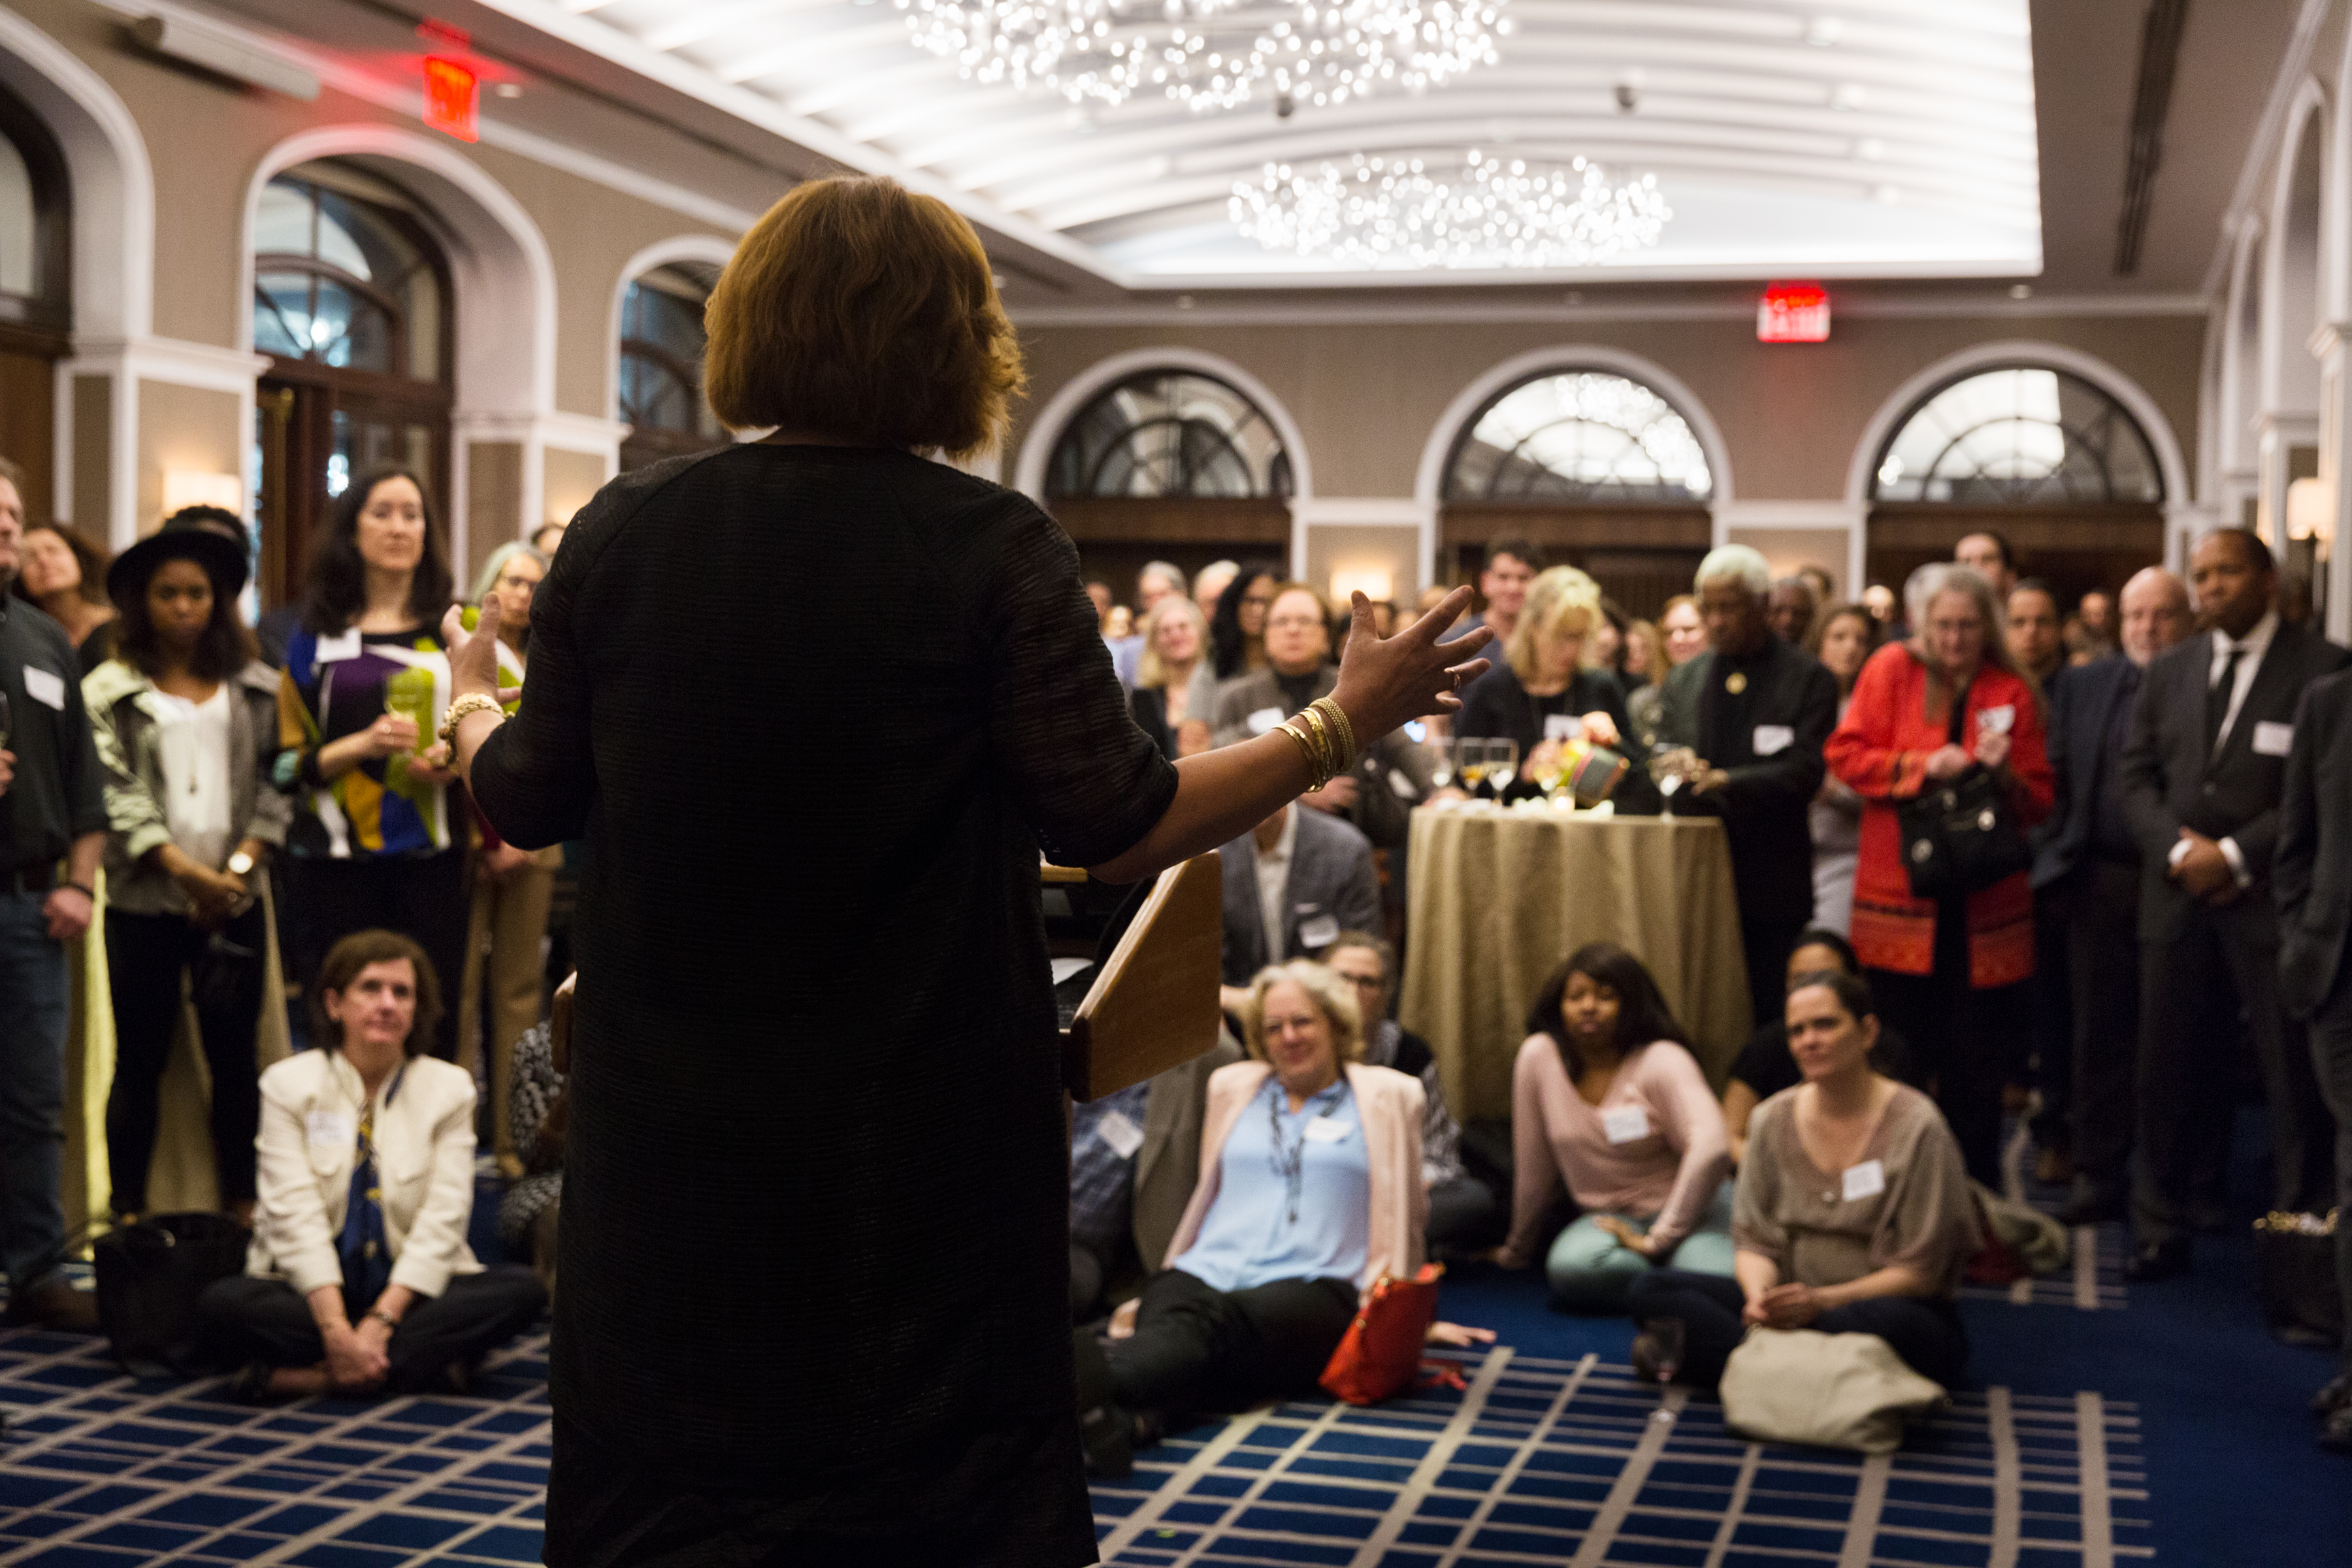 Elizabeth Alexander speaks to a group of alumni at the Yale Club in New York.